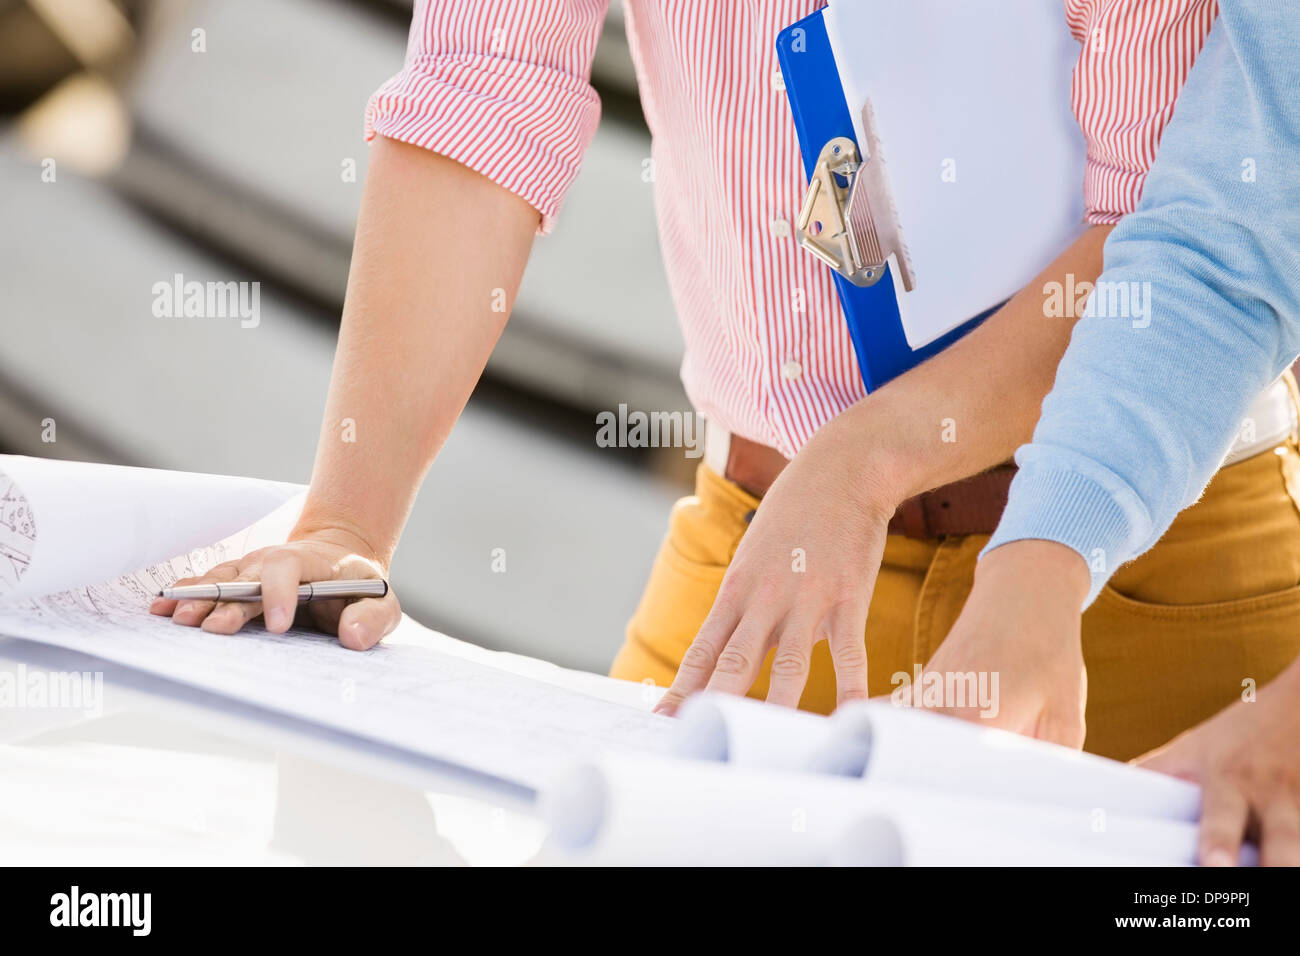 Cropped image of architects with blueprints and clipboard - Stock Image